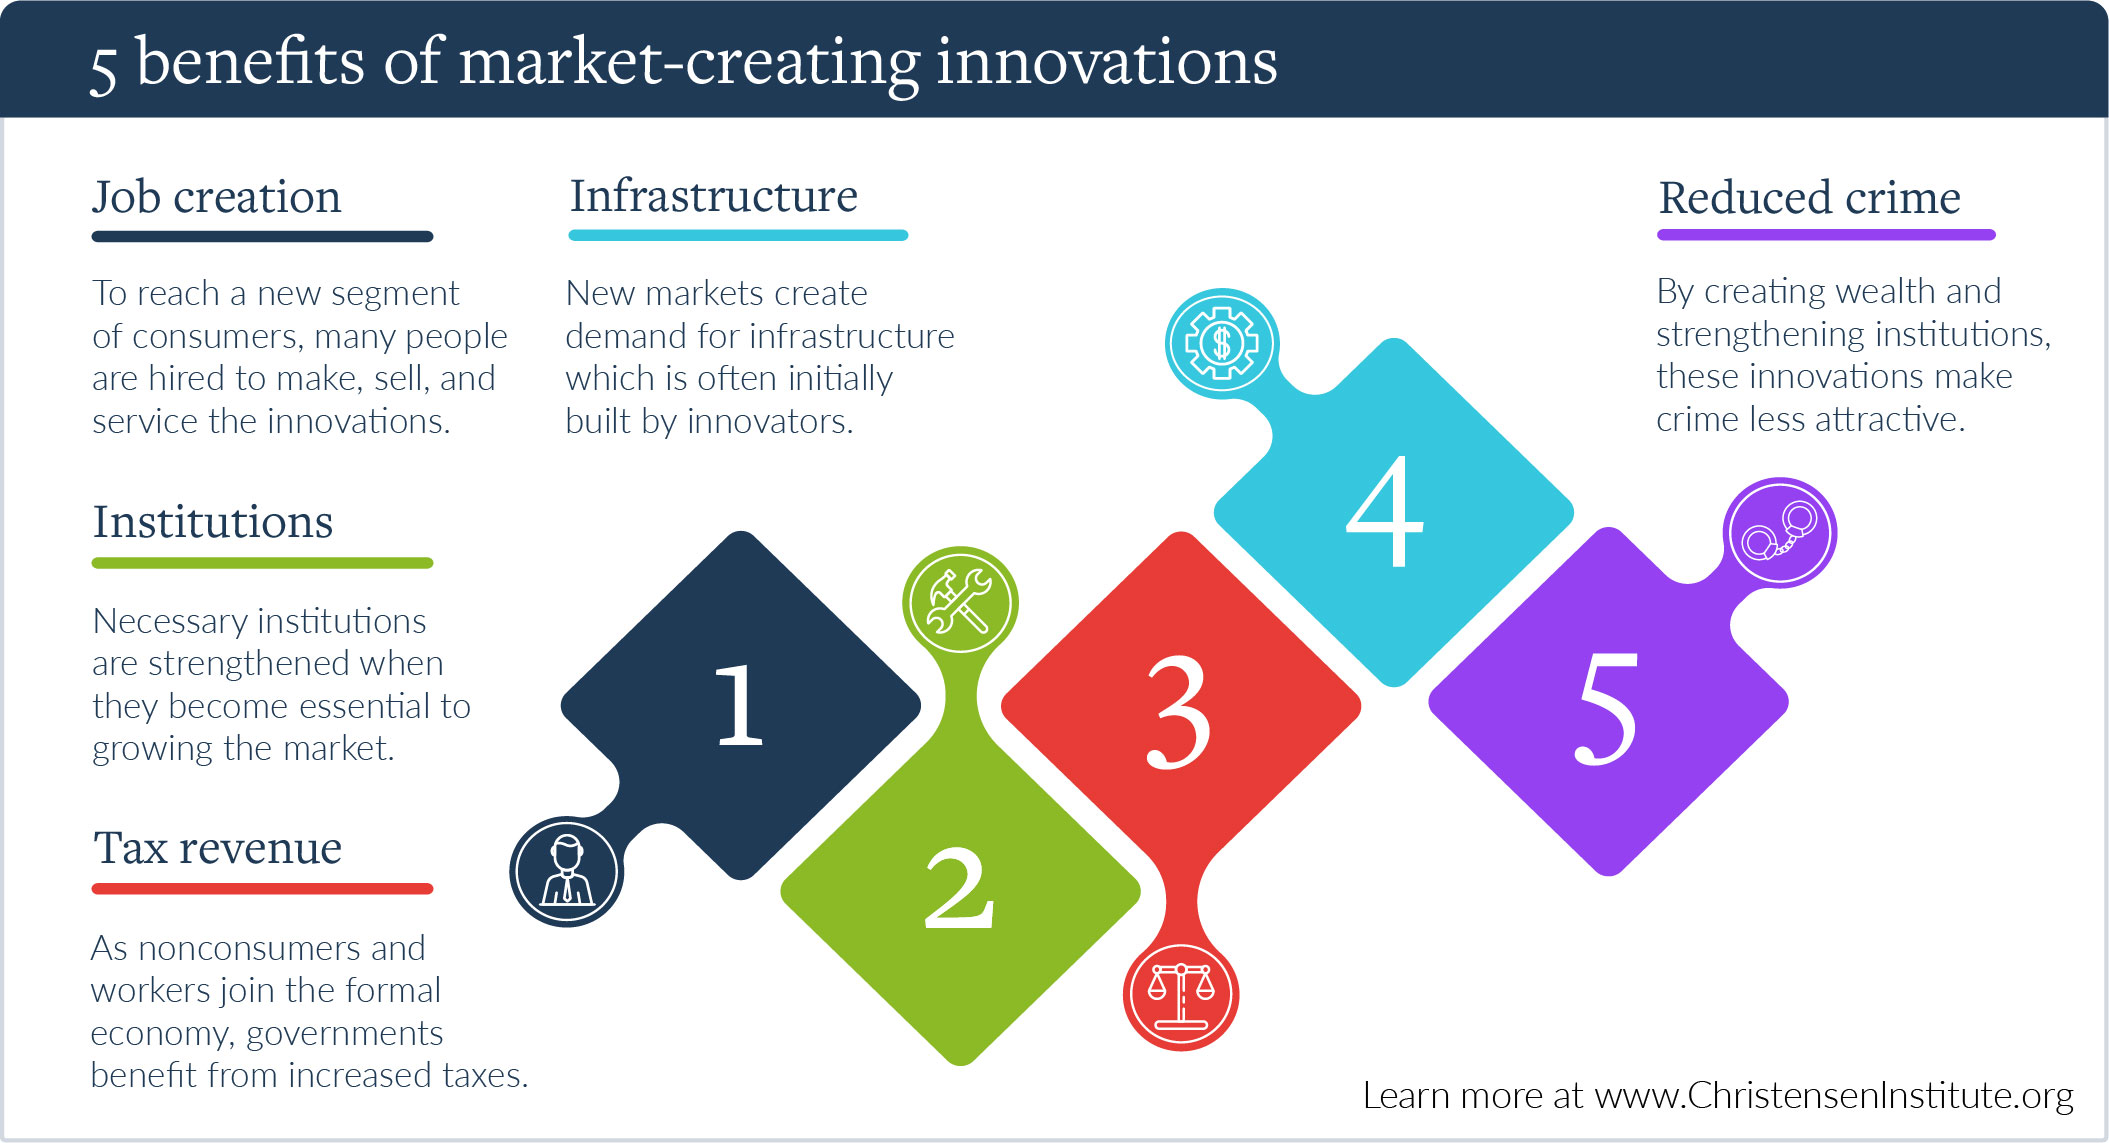 market-creating innovations